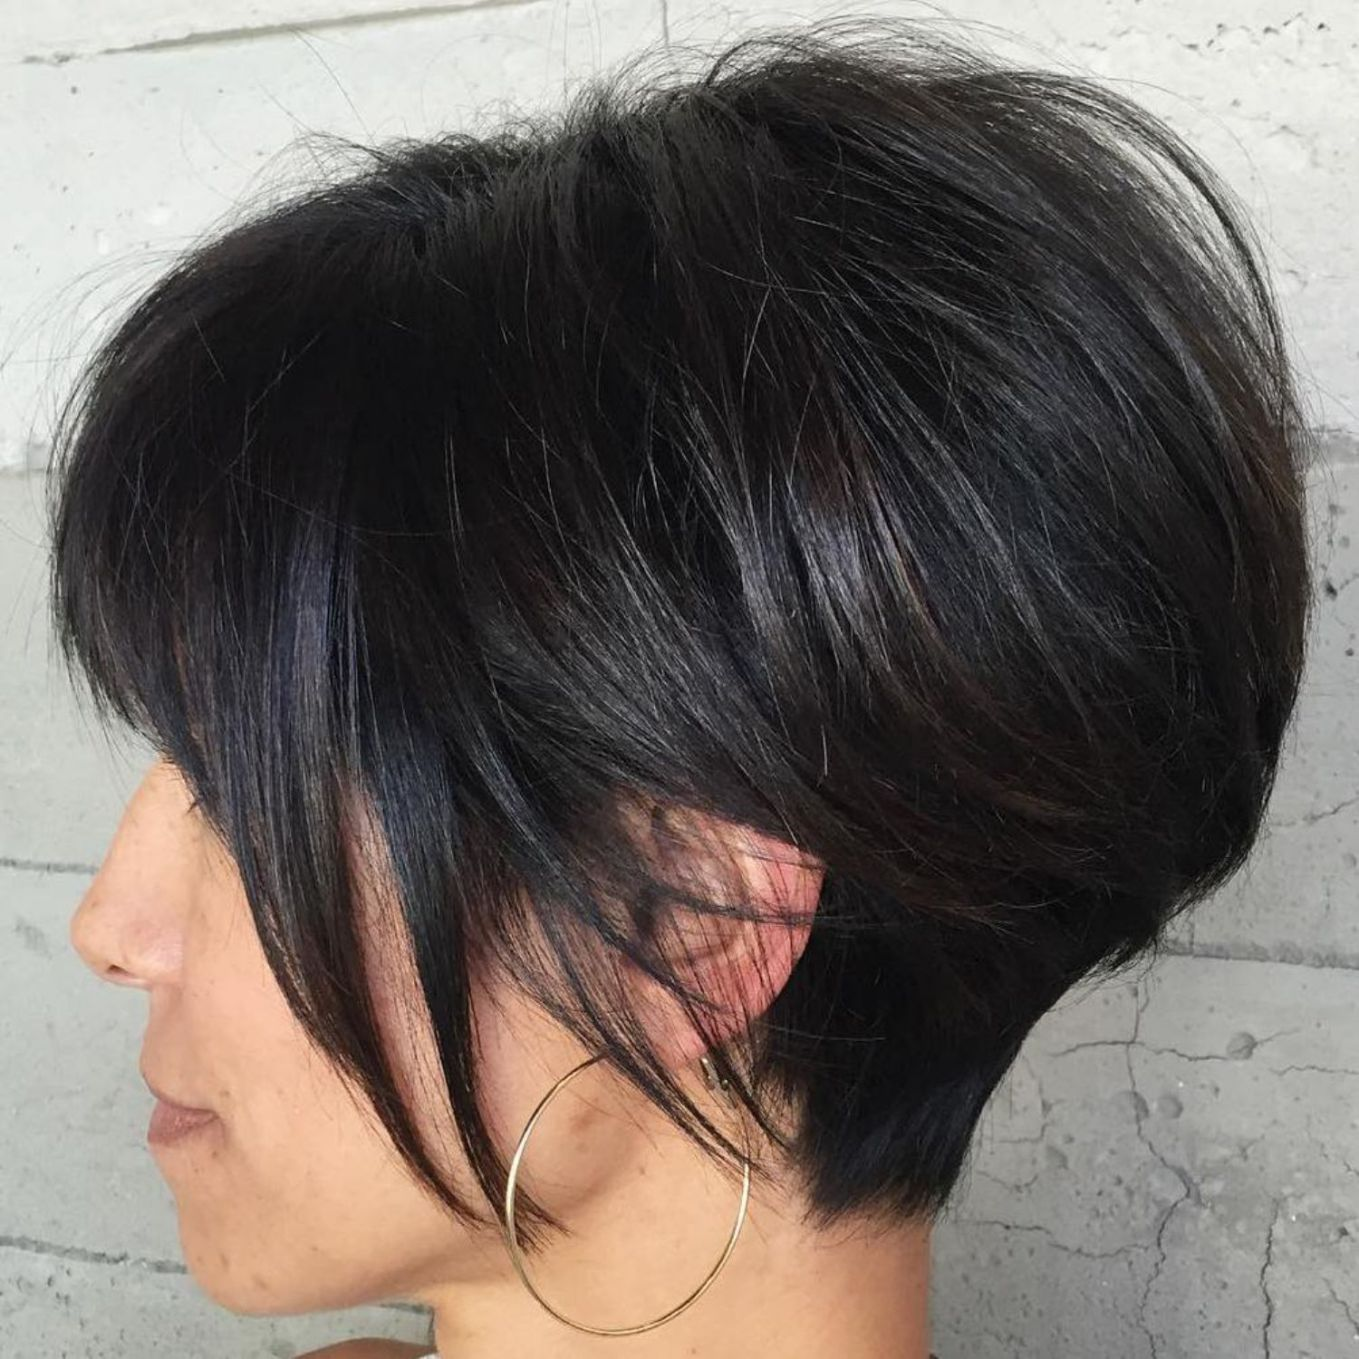 classy short haircuts and hairstyles for thick hair in